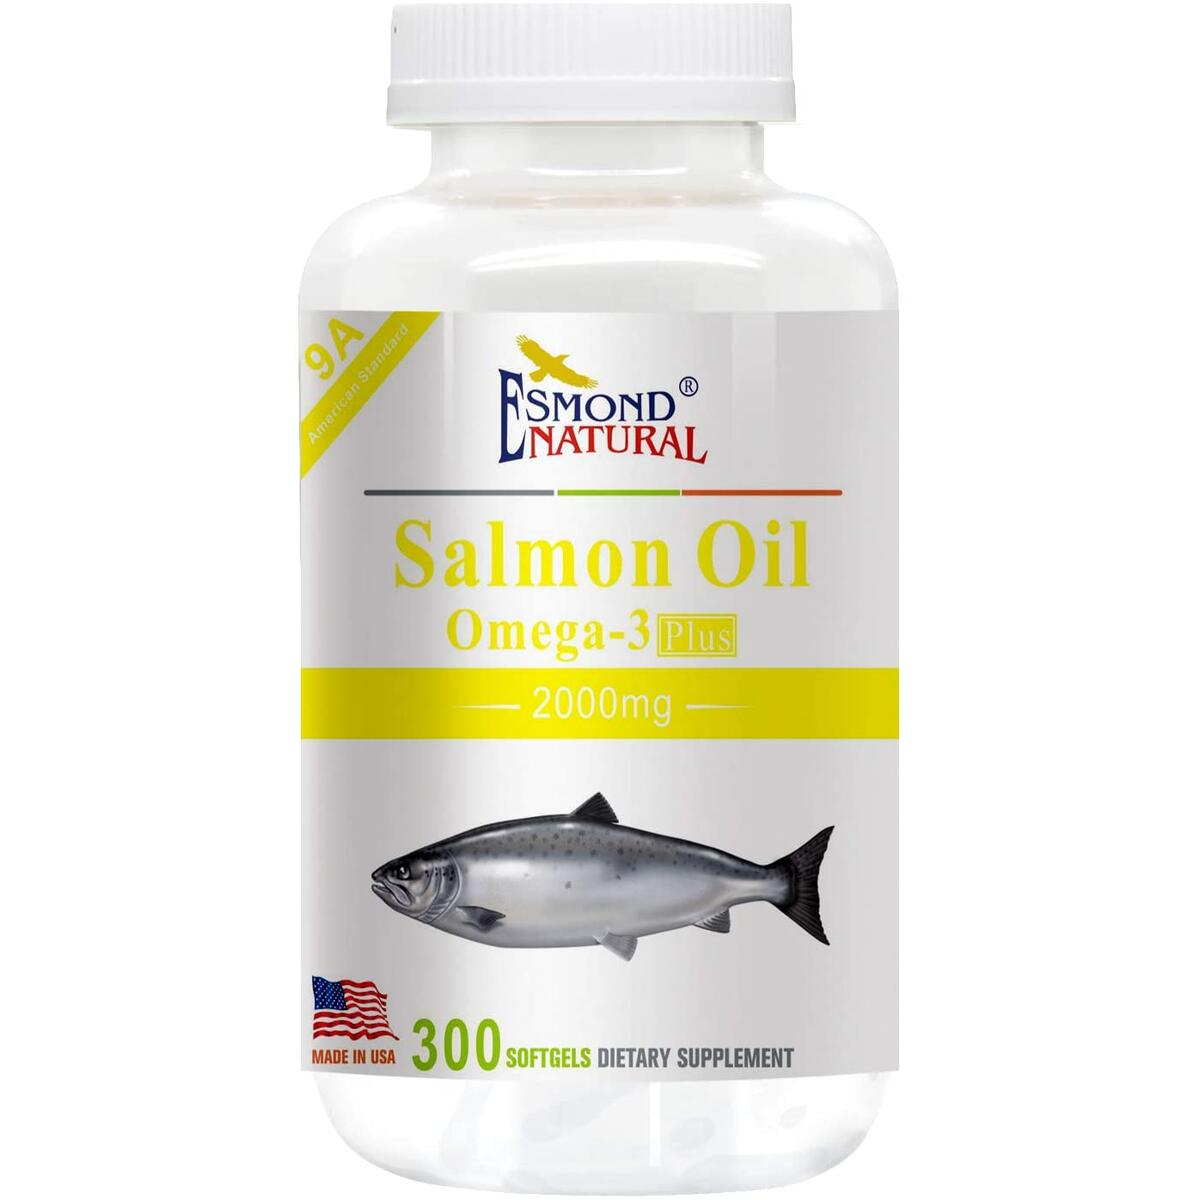 (3 Count, 10% Off) Esmond Natural: Salmon Oil (Omega-3 Plus), GMP, Natural Product Assn Certified, Made in USA-2000mg, 900 Softgels